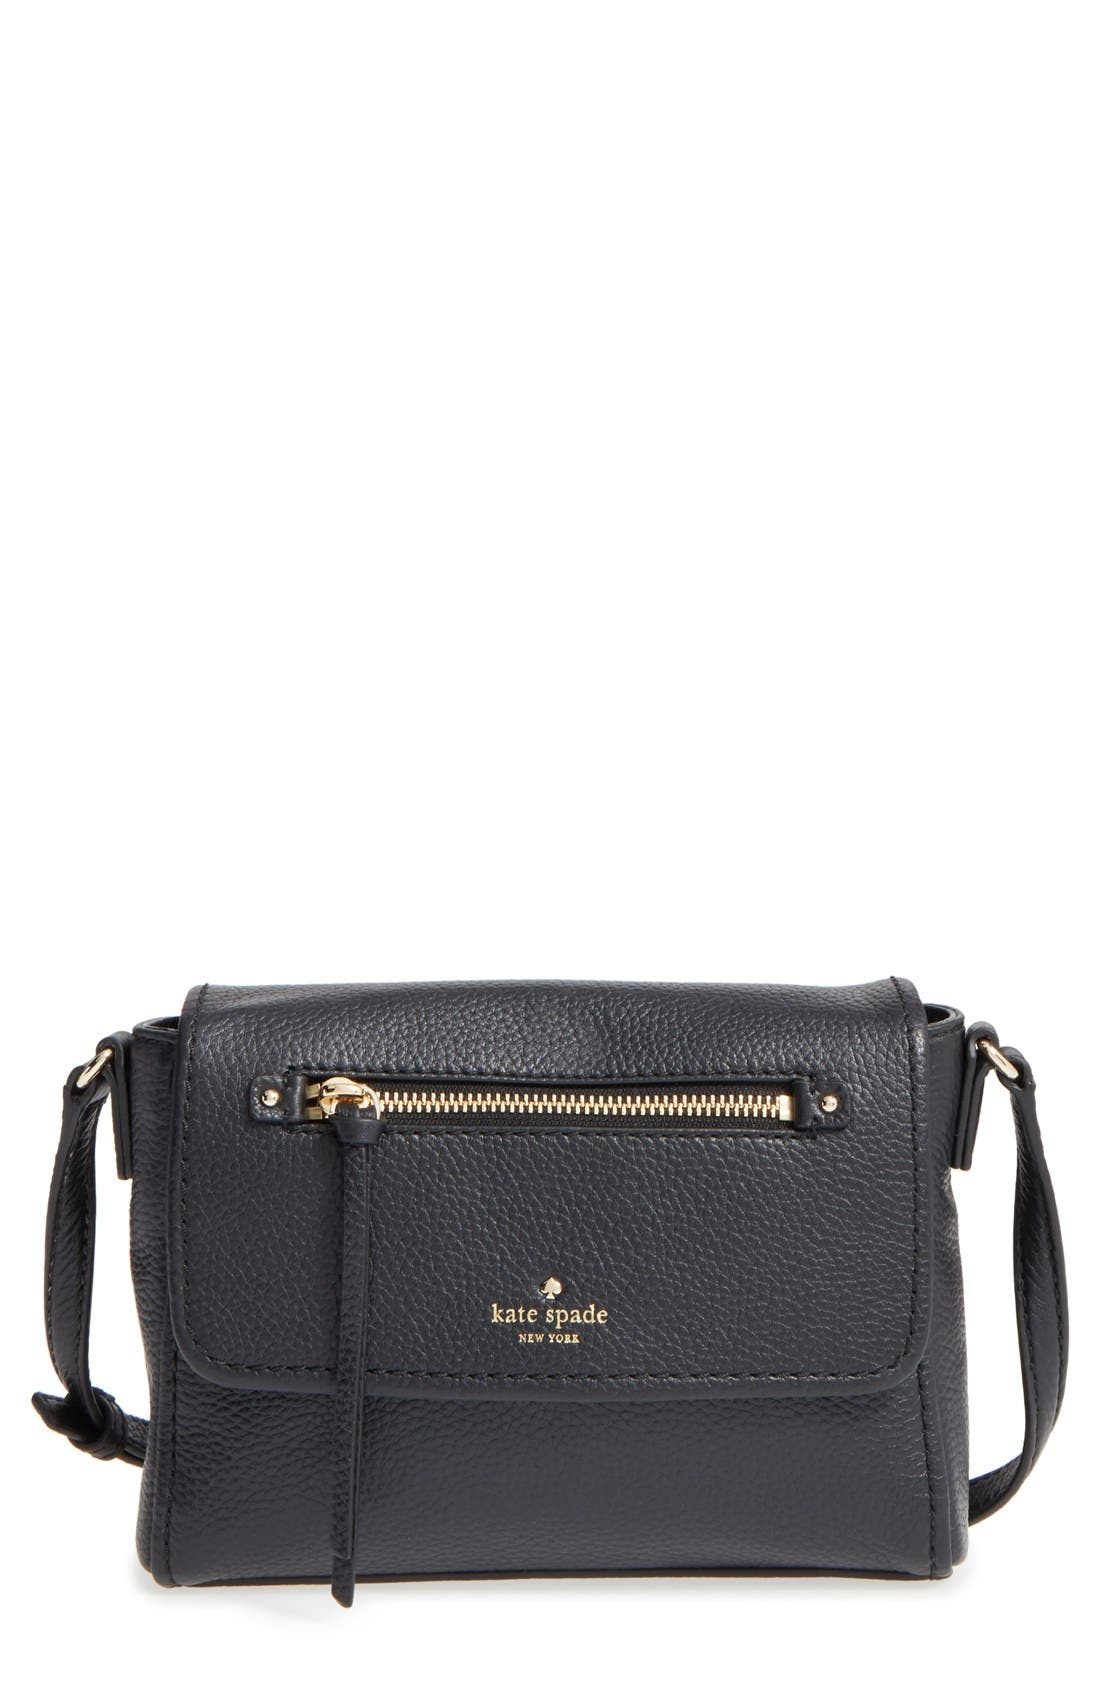 KATE SPADE NEW YORK, 'cobble hill - mini toddy' leather crossbody bag, Main thumbnail 1, color, 001